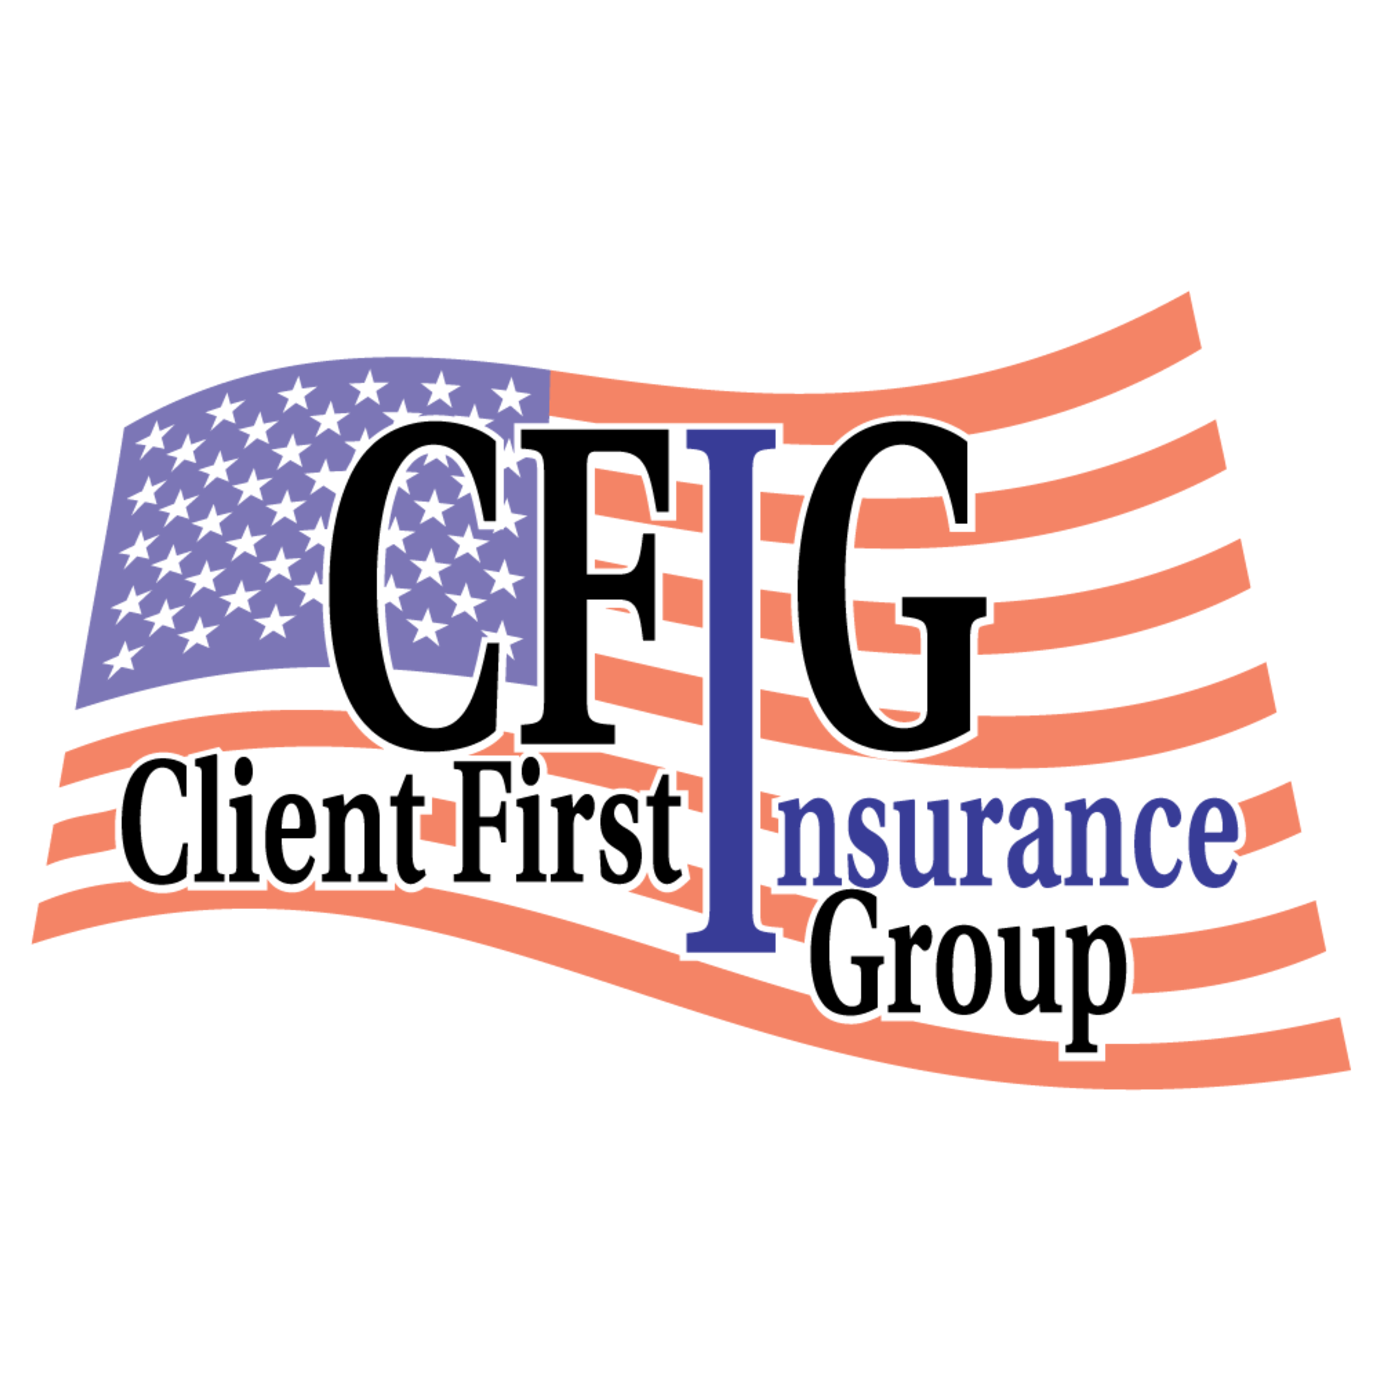 Daniel Hermany, Jr. - Client First Insurance Group LLC